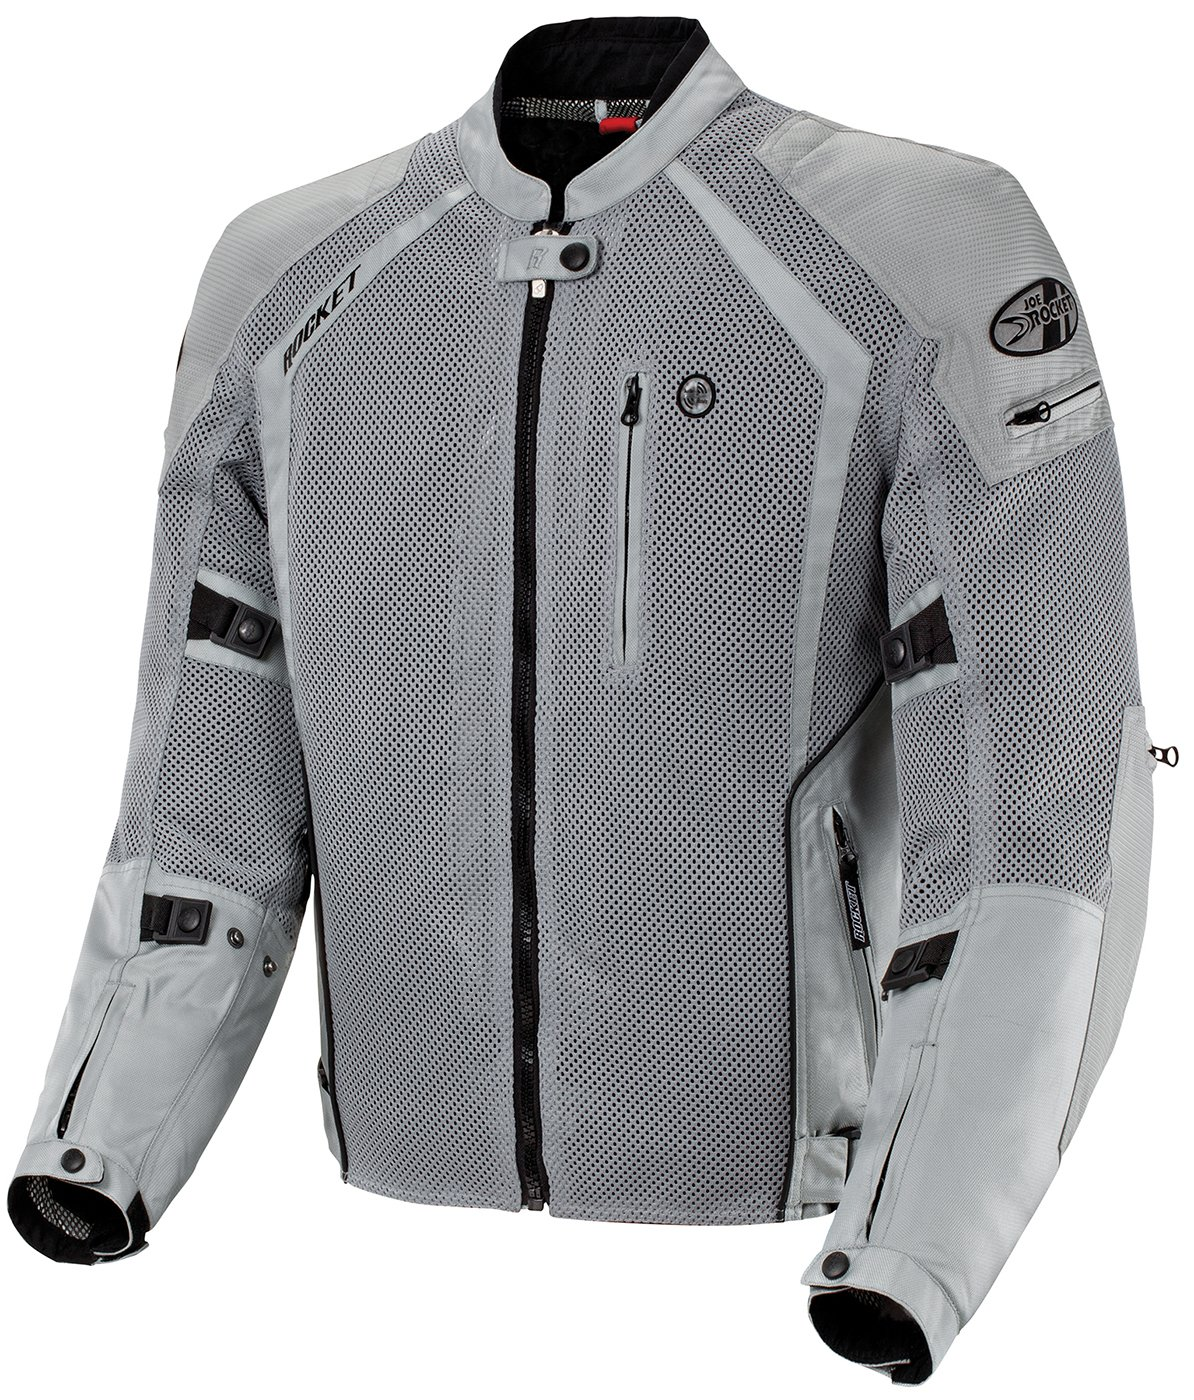 Joe Rocket Phoenix Ion Men's Mesh Motorcycle Jacket (Silver, X-Large) 1516-4515